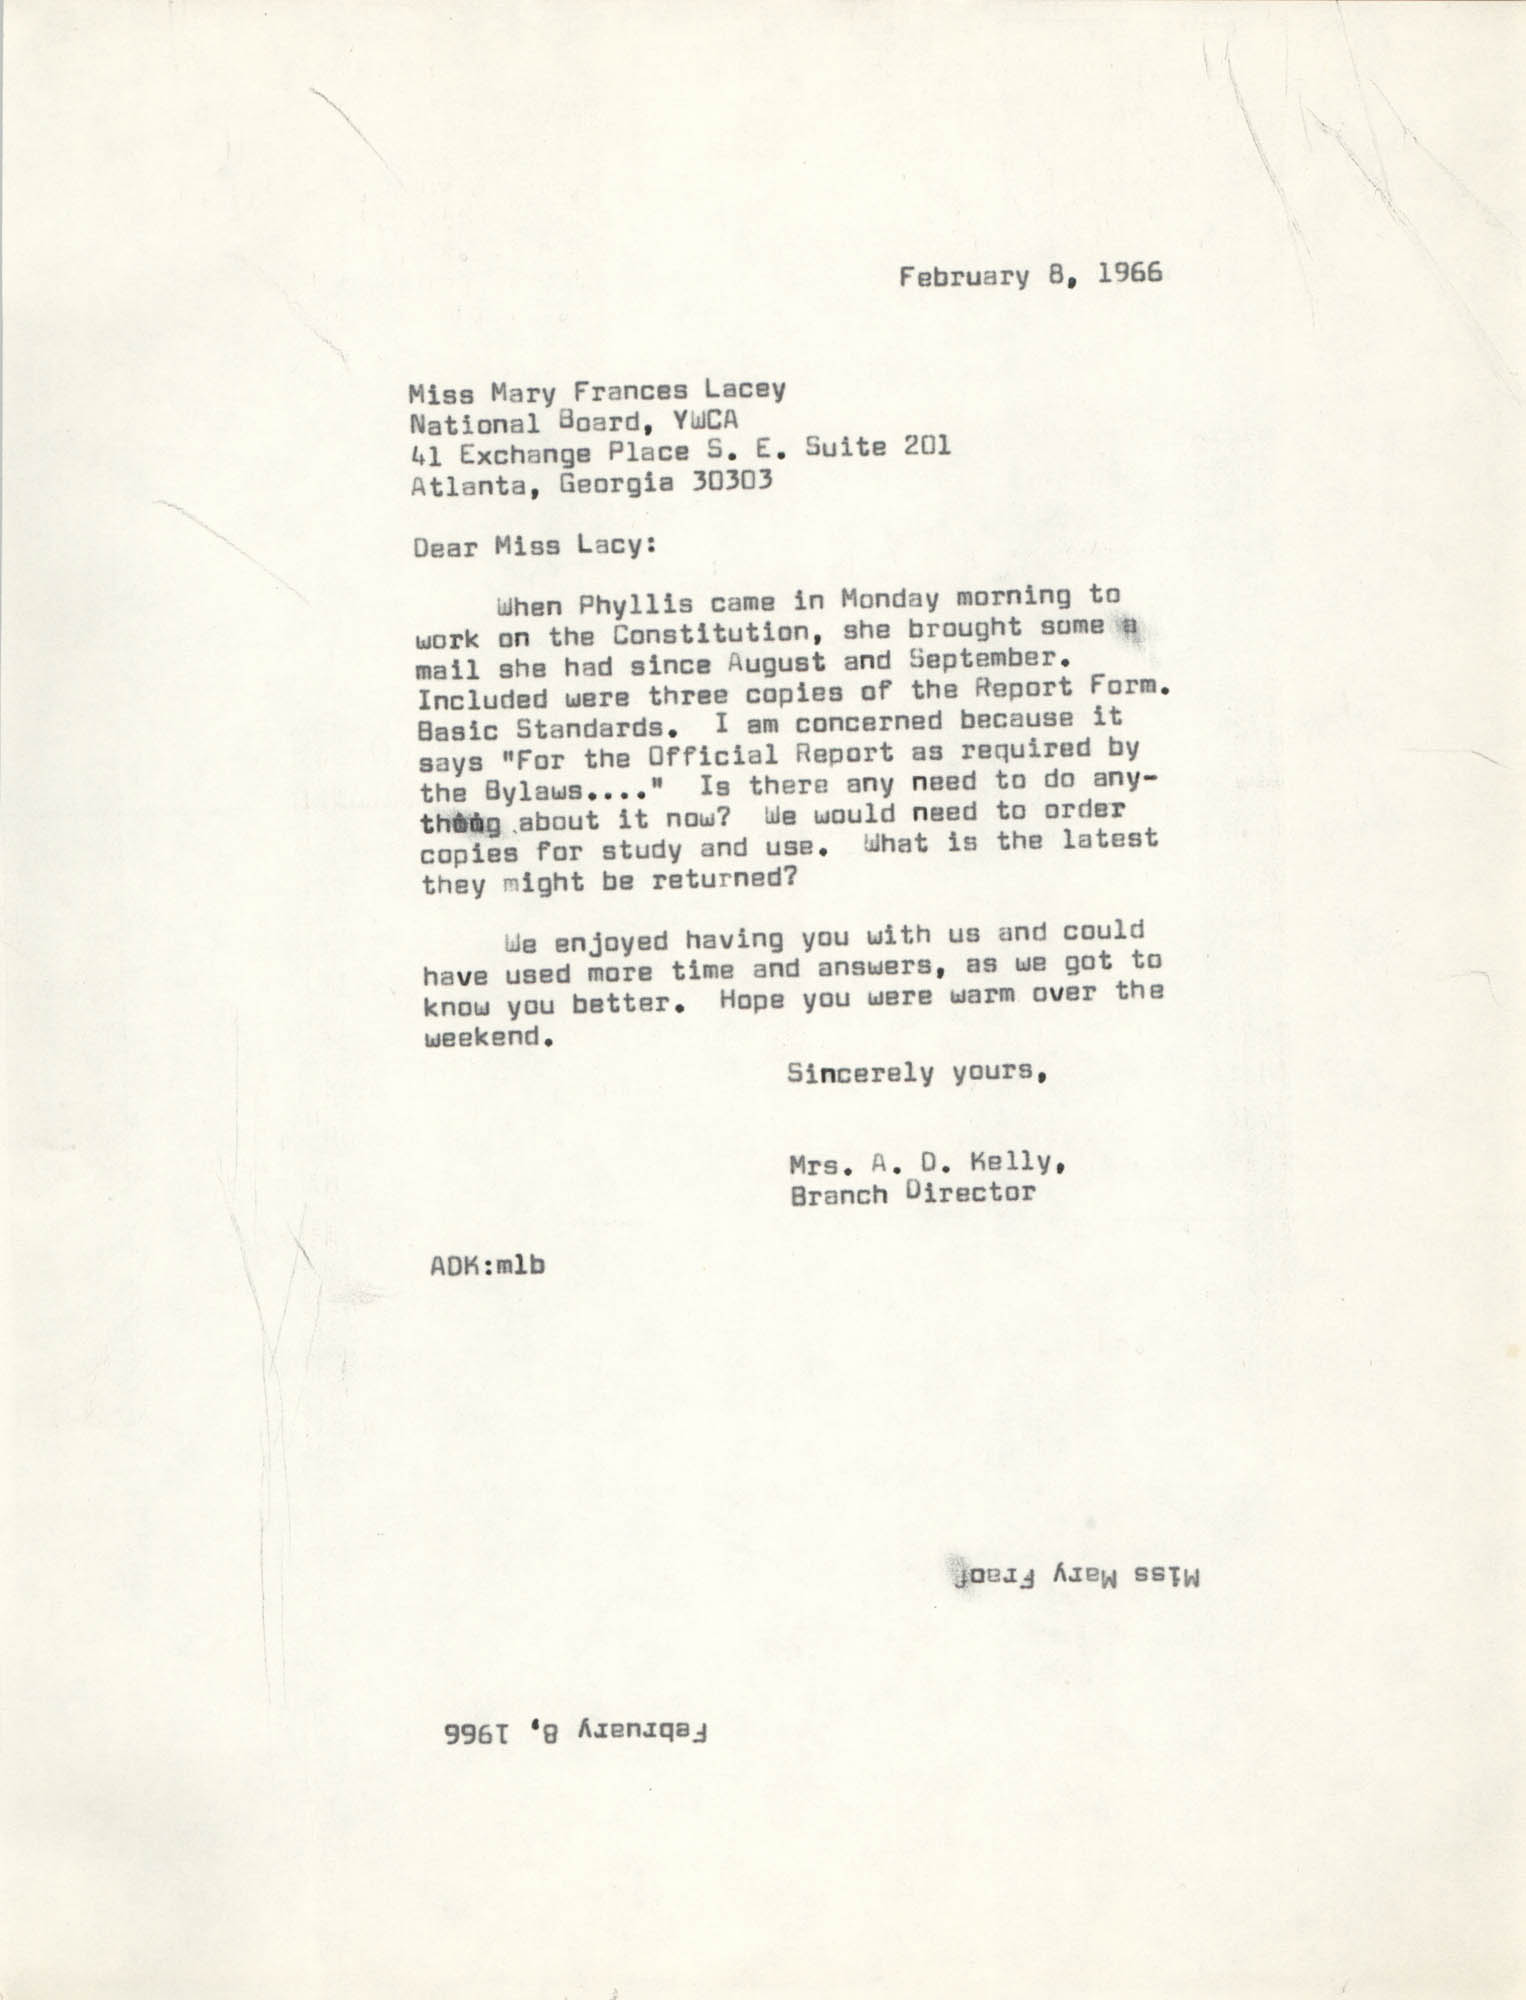 Letter from Anna D. Kelly to Mary Frances Lacey, February 8, 1966